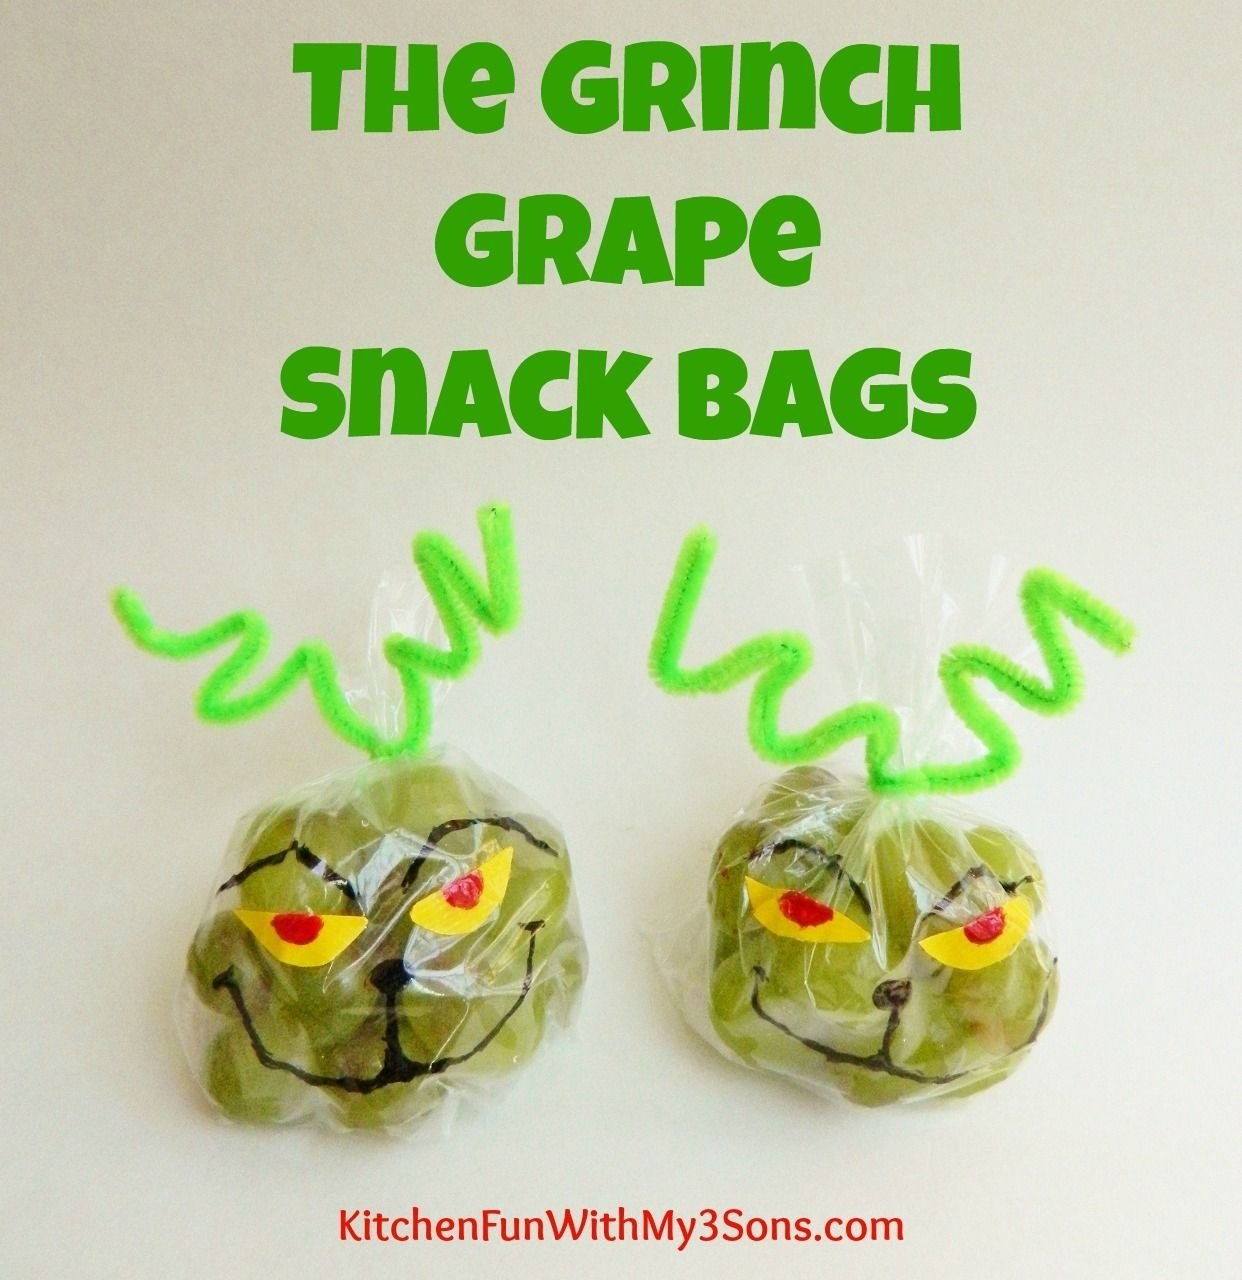 10 Perfect Cute Snack Ideas For Preschoolers the grinch grape snack bags for class parties at school from 2021